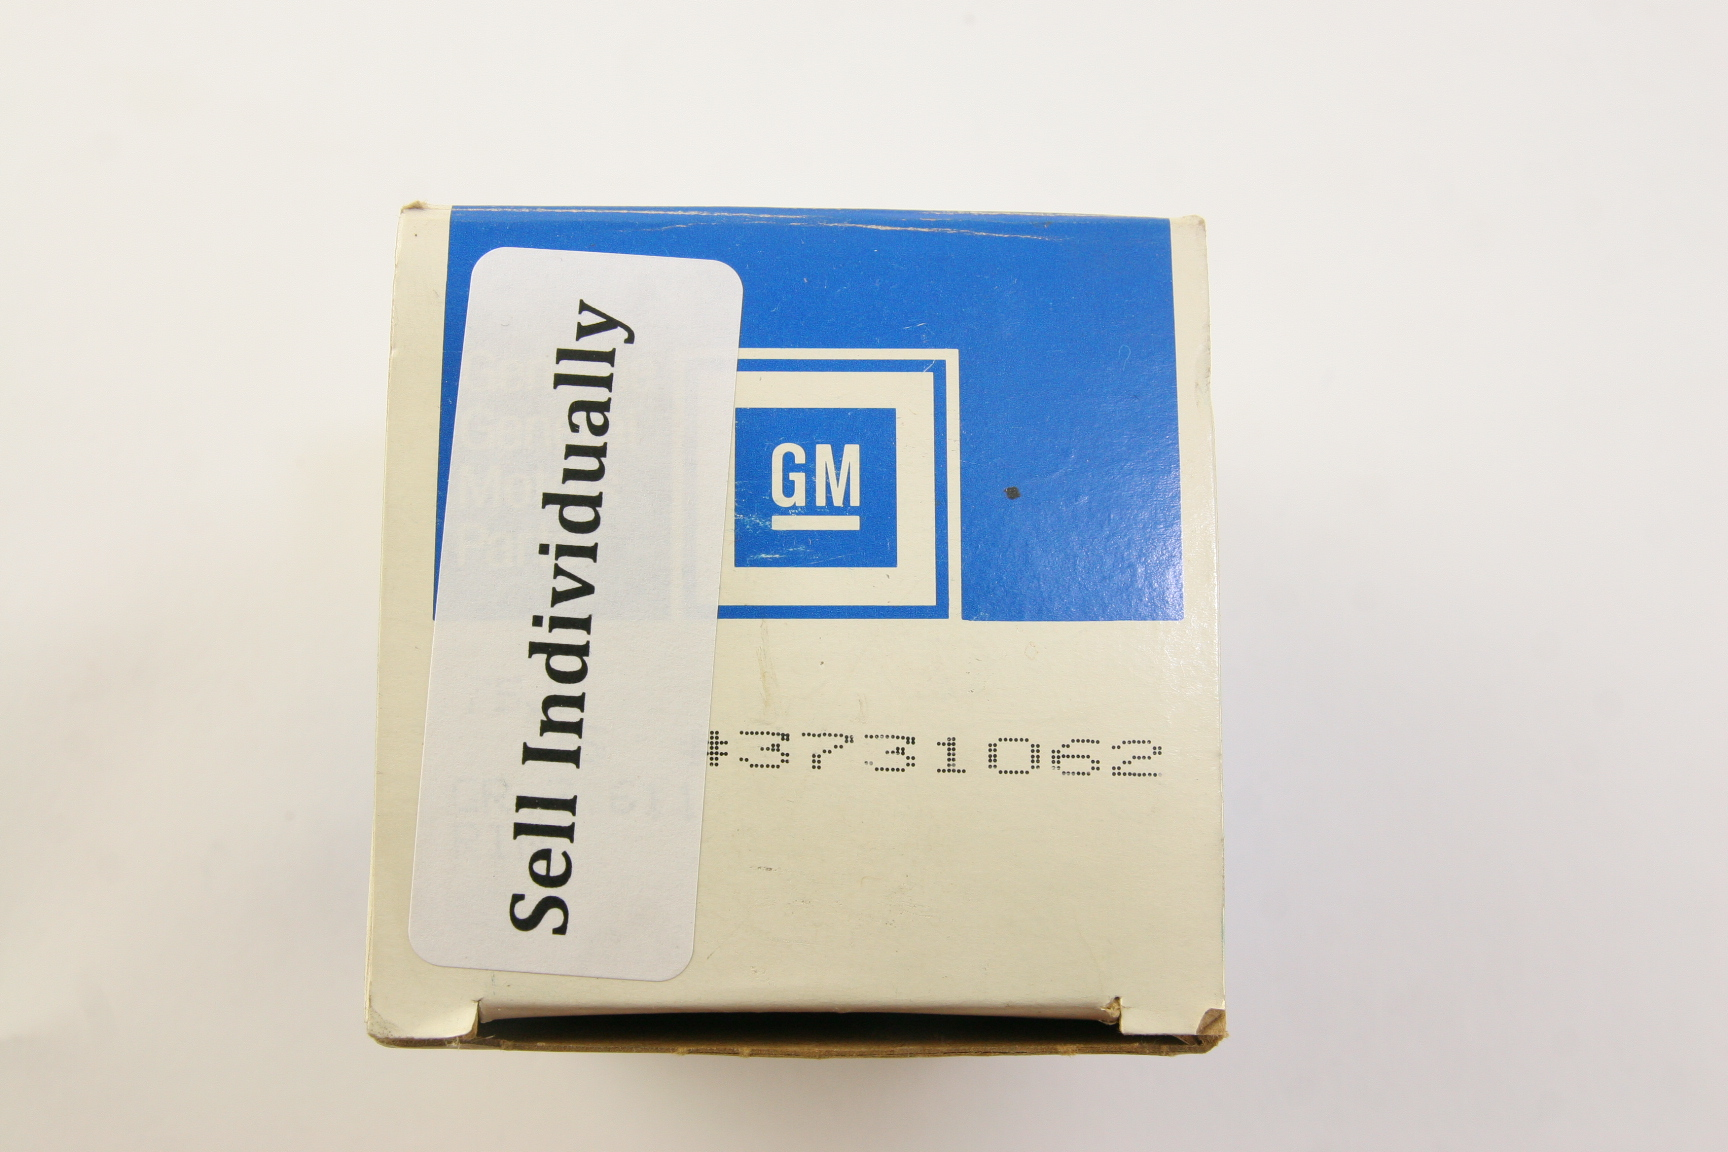 New Genuine OEM GM 3731062 (One) Exhaust Pipe to Manifold Gasket Free Shipping - image 4